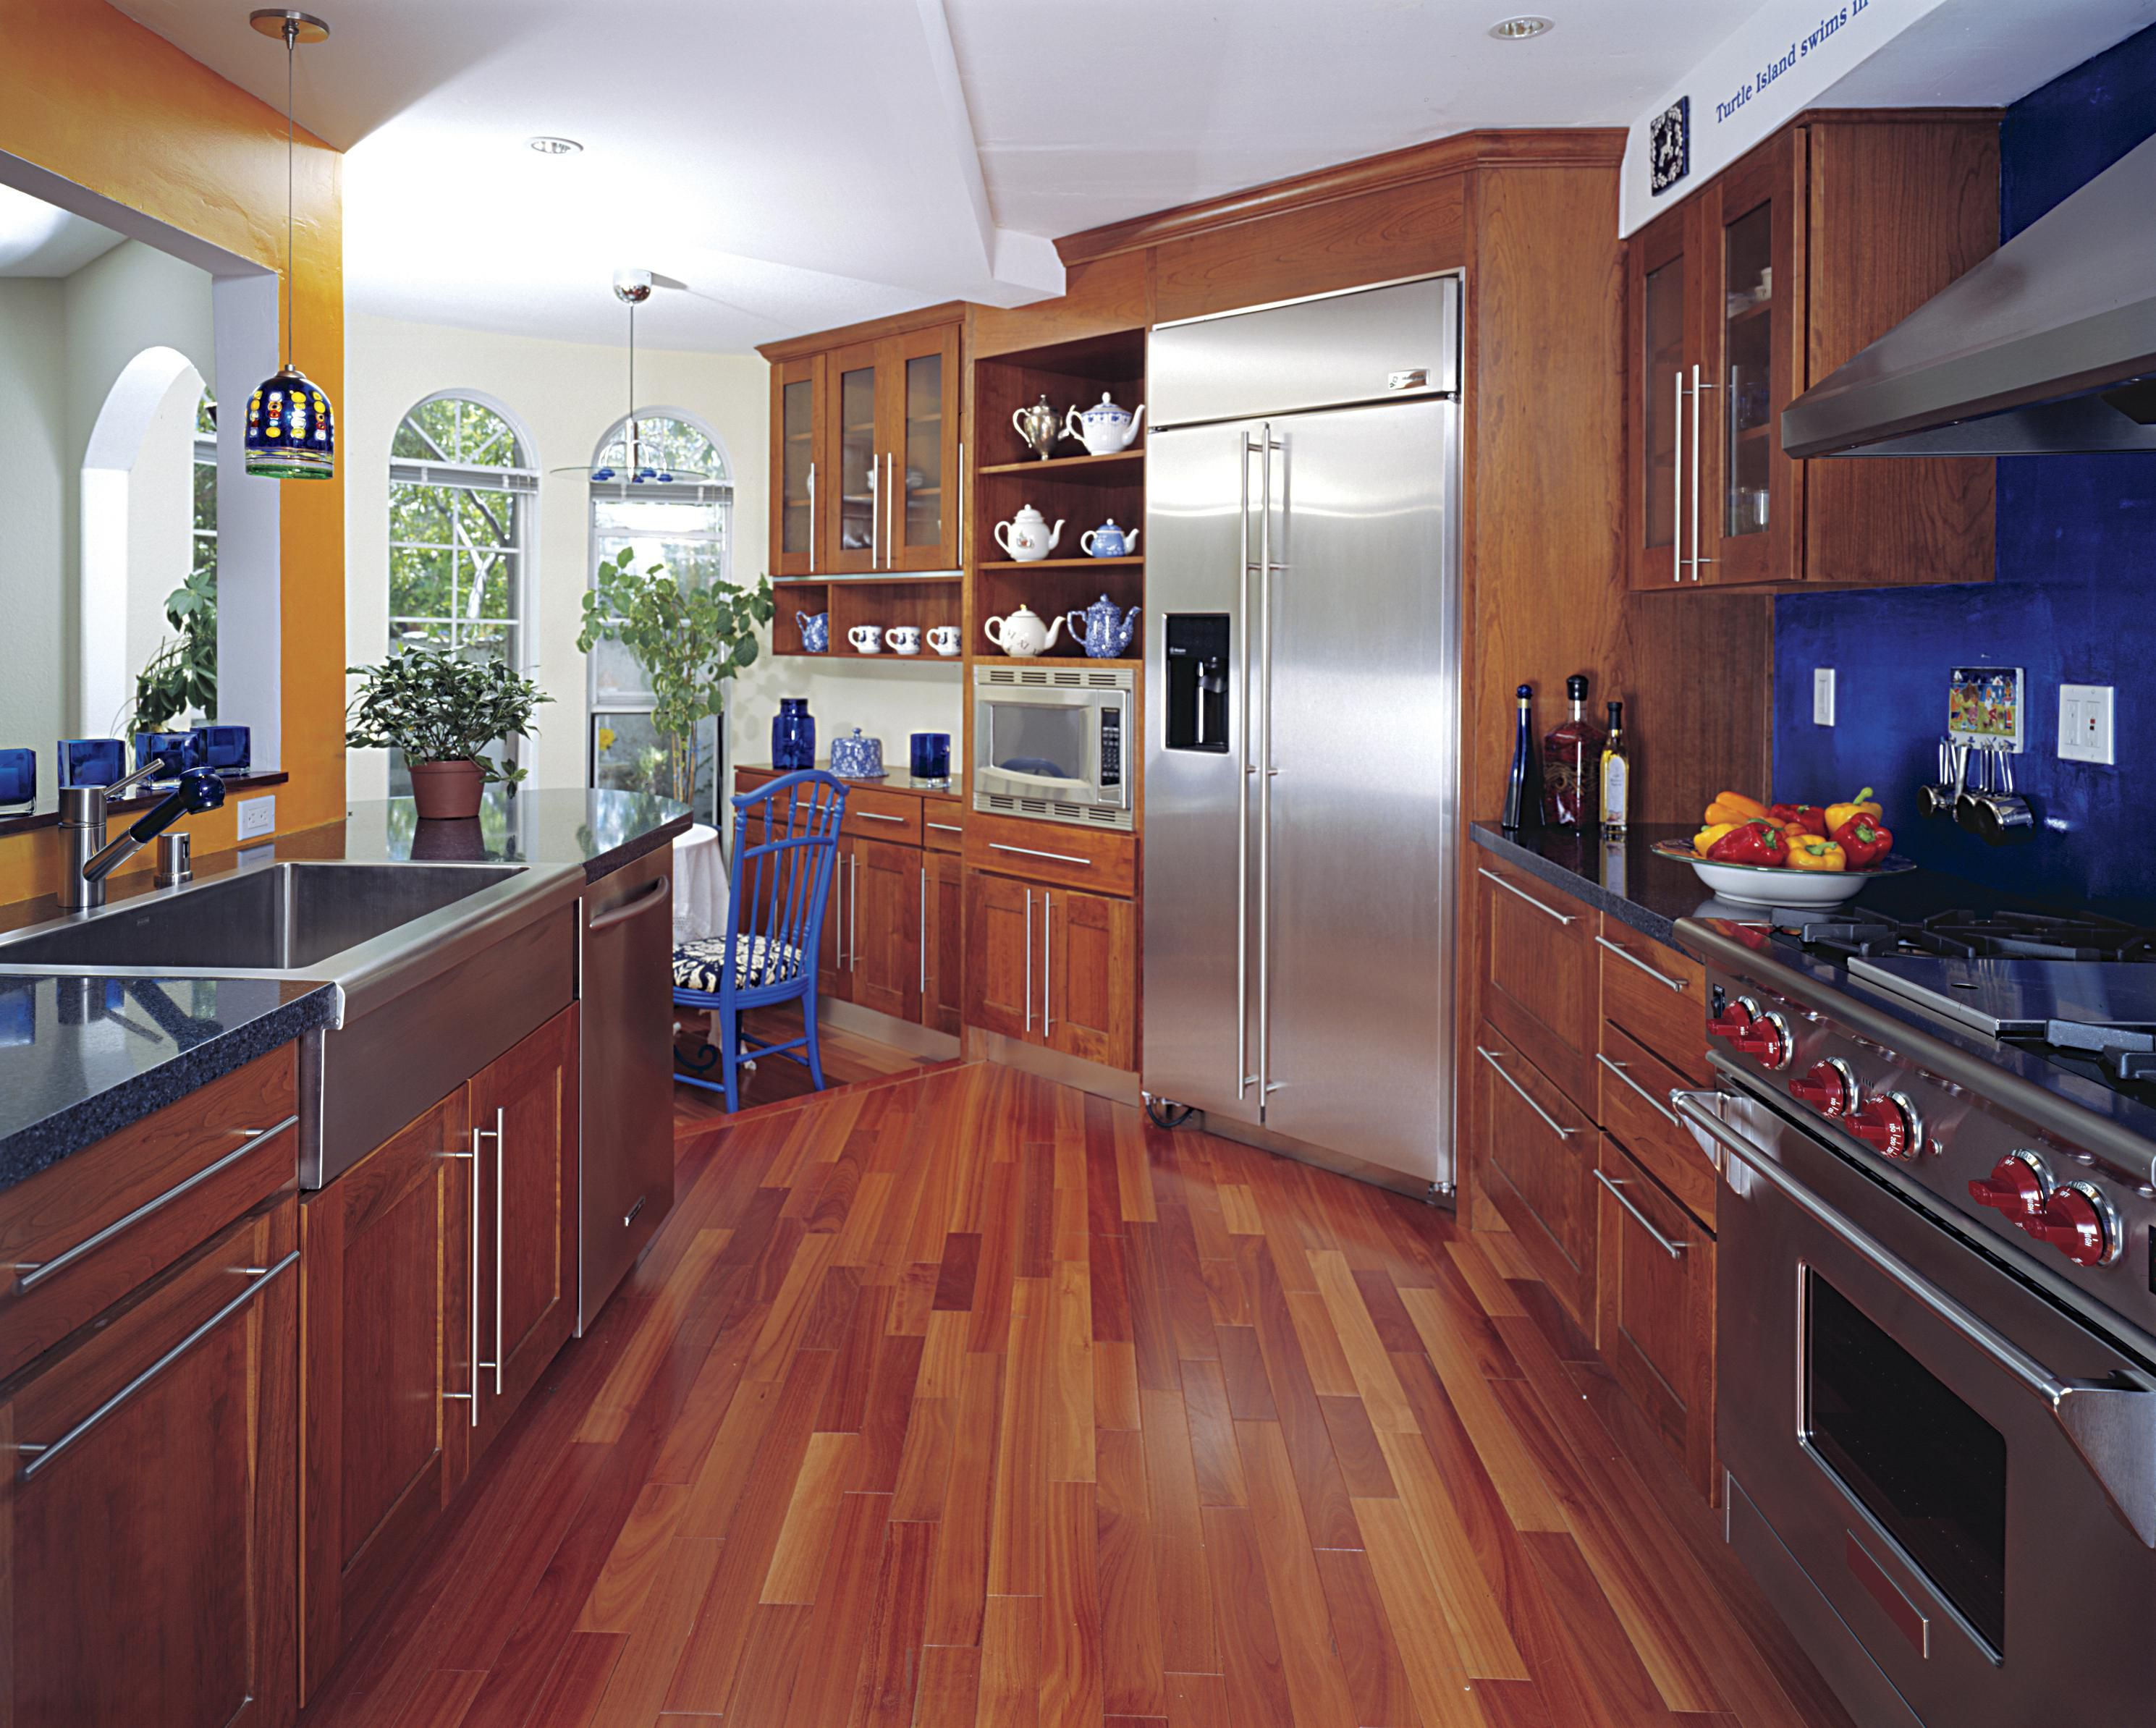 Hardwood floor in a kitchen is this allowed for Flooring for kitchen floors